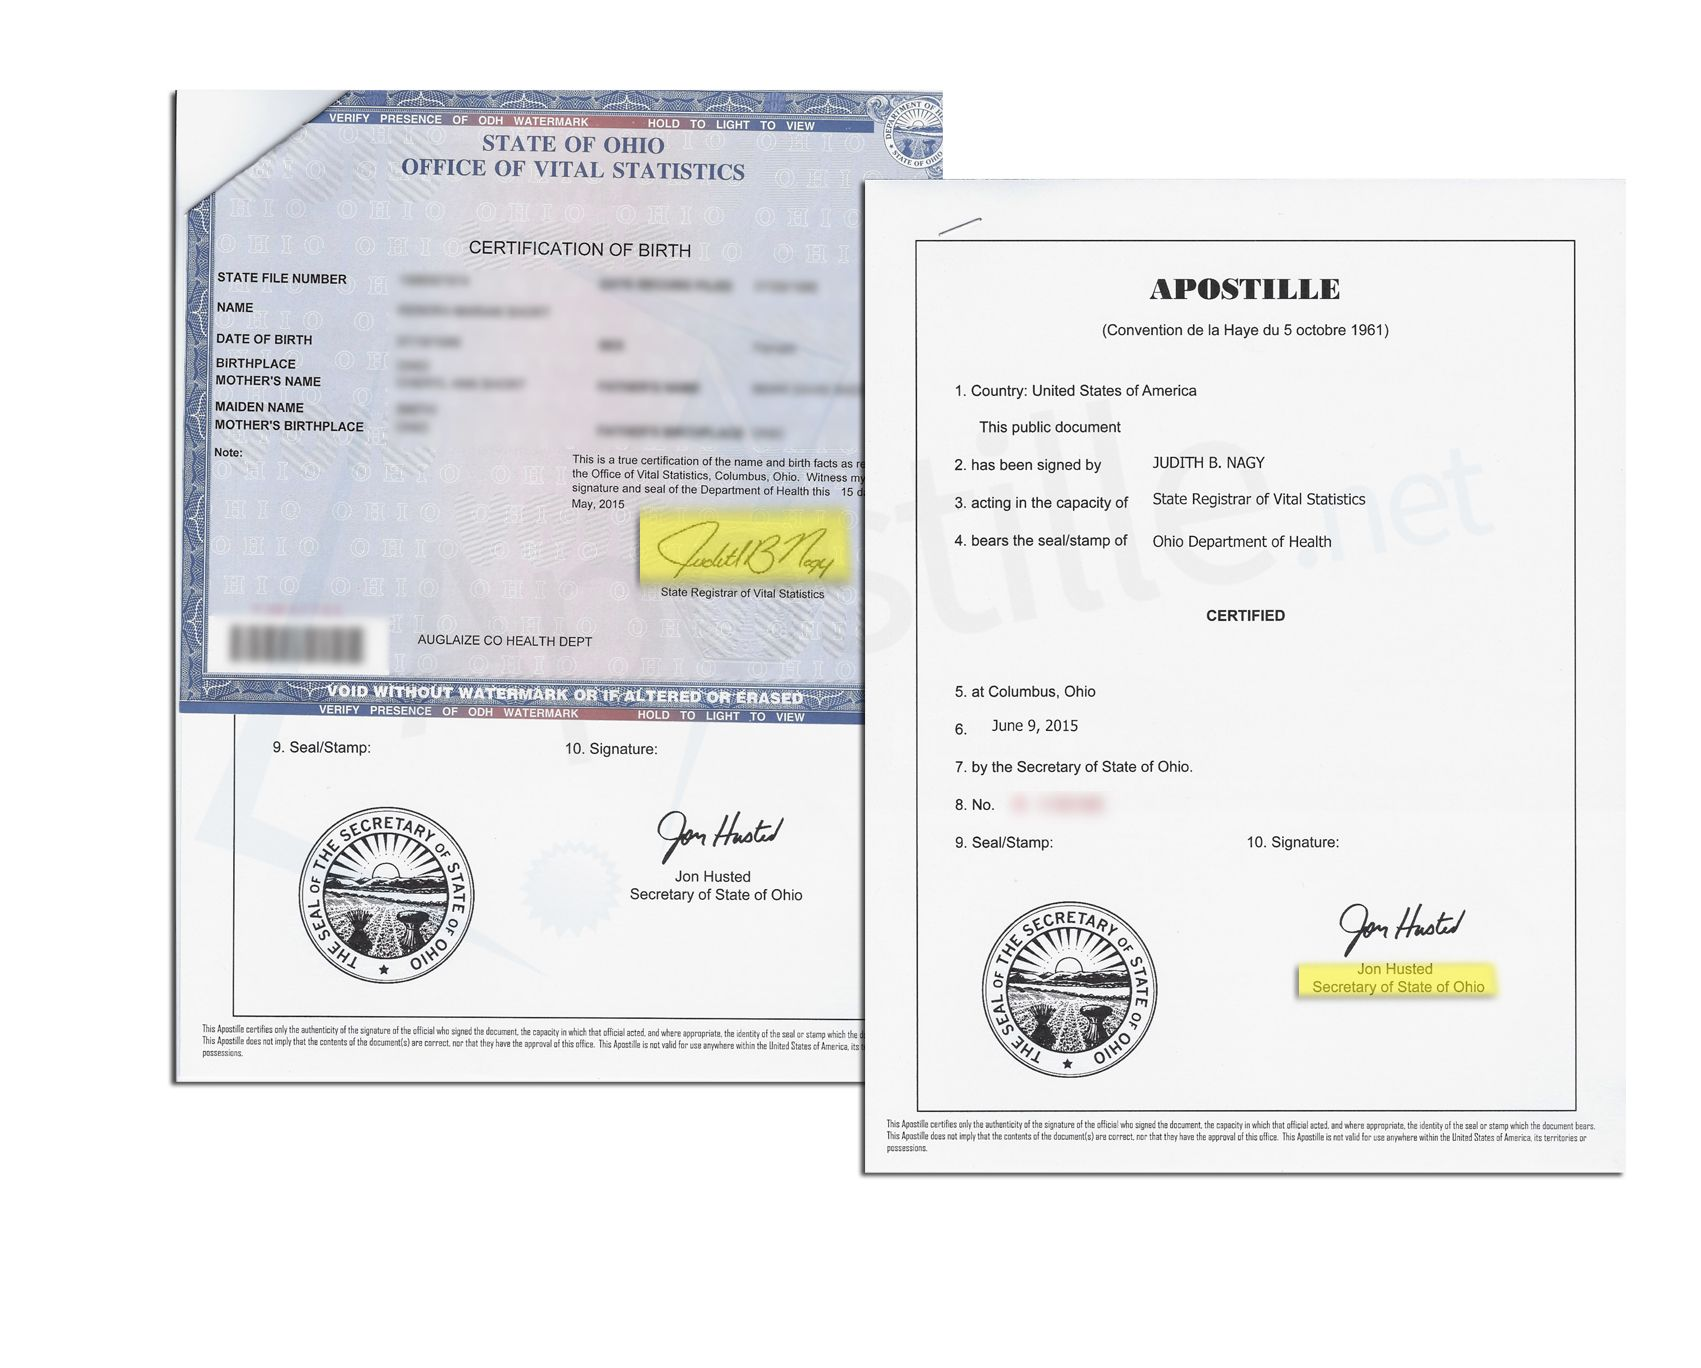 State of ohio apostille issued by jon husted secretary of state of state of ohio apostille issued by jon husted secretary of state of a birth certificate issued aiddatafo Images